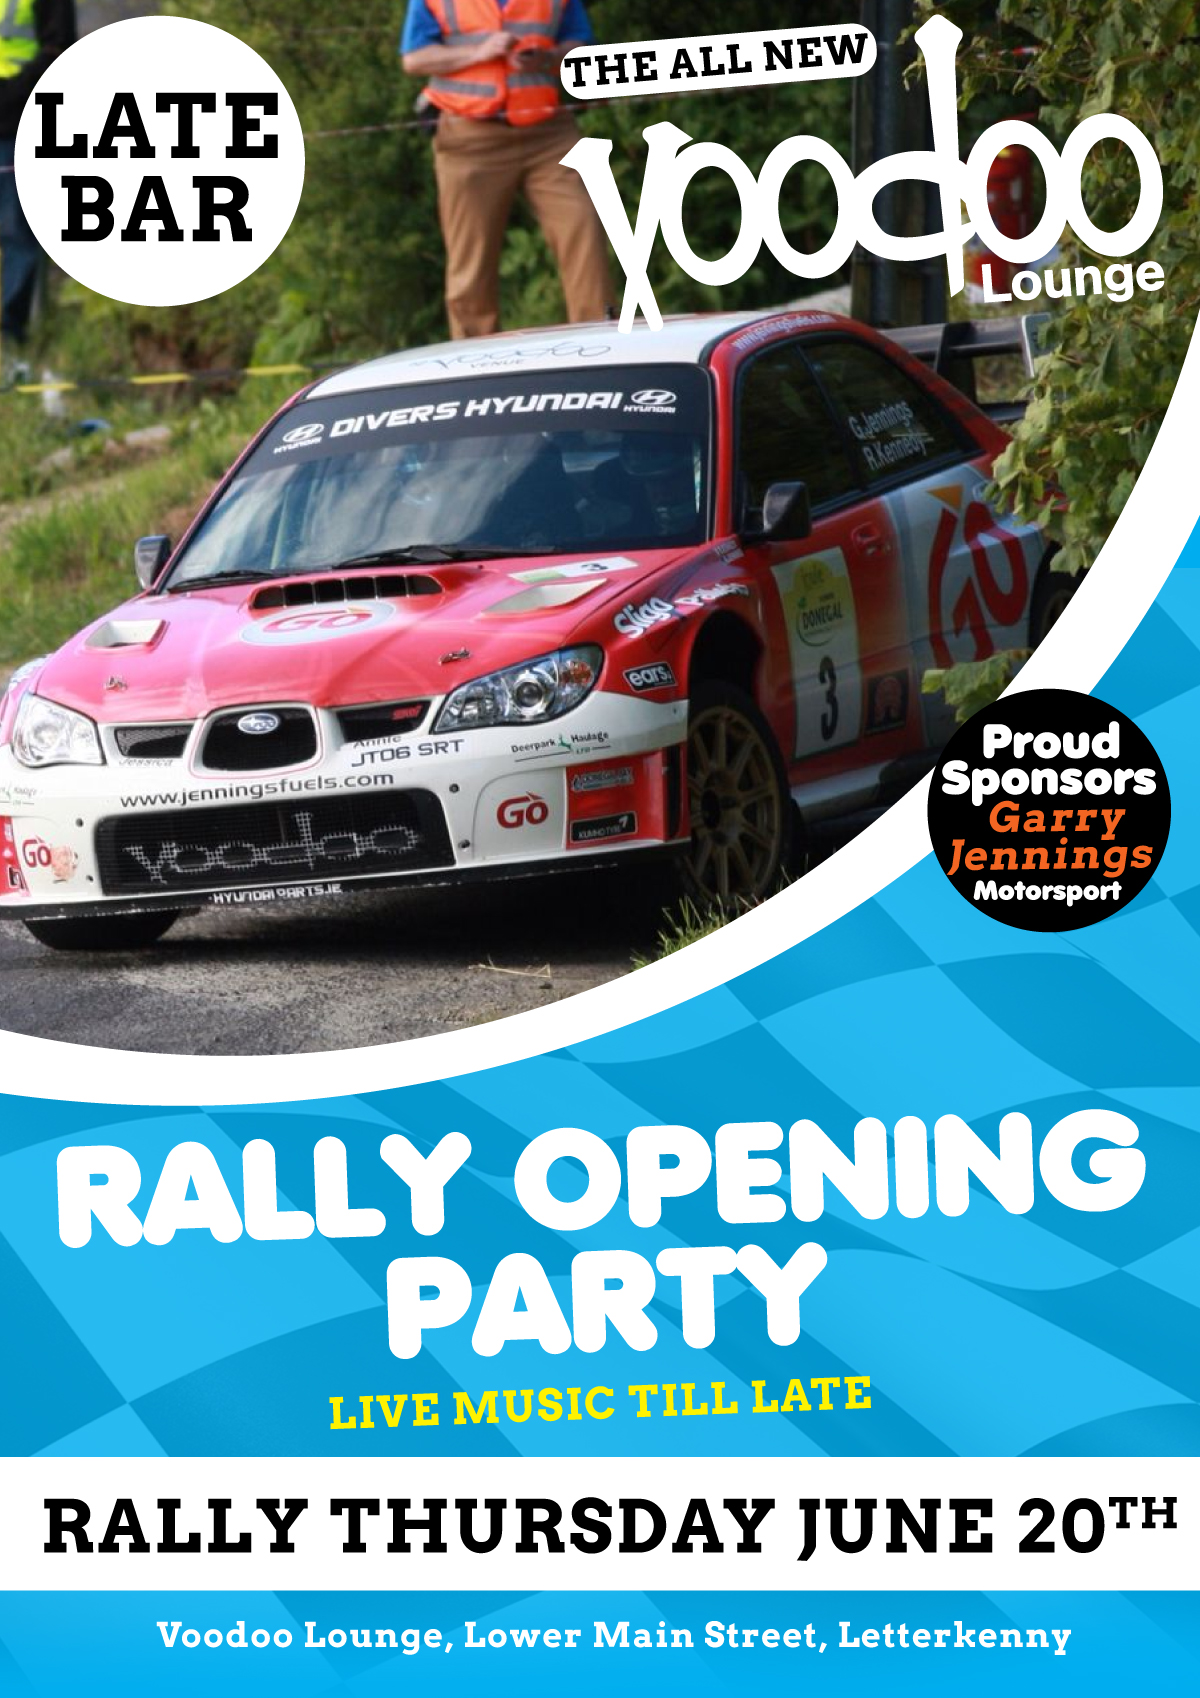 voodoo-venue--RALLy-THURSDAY---opening-party-lounge-june-20-2019.jpg